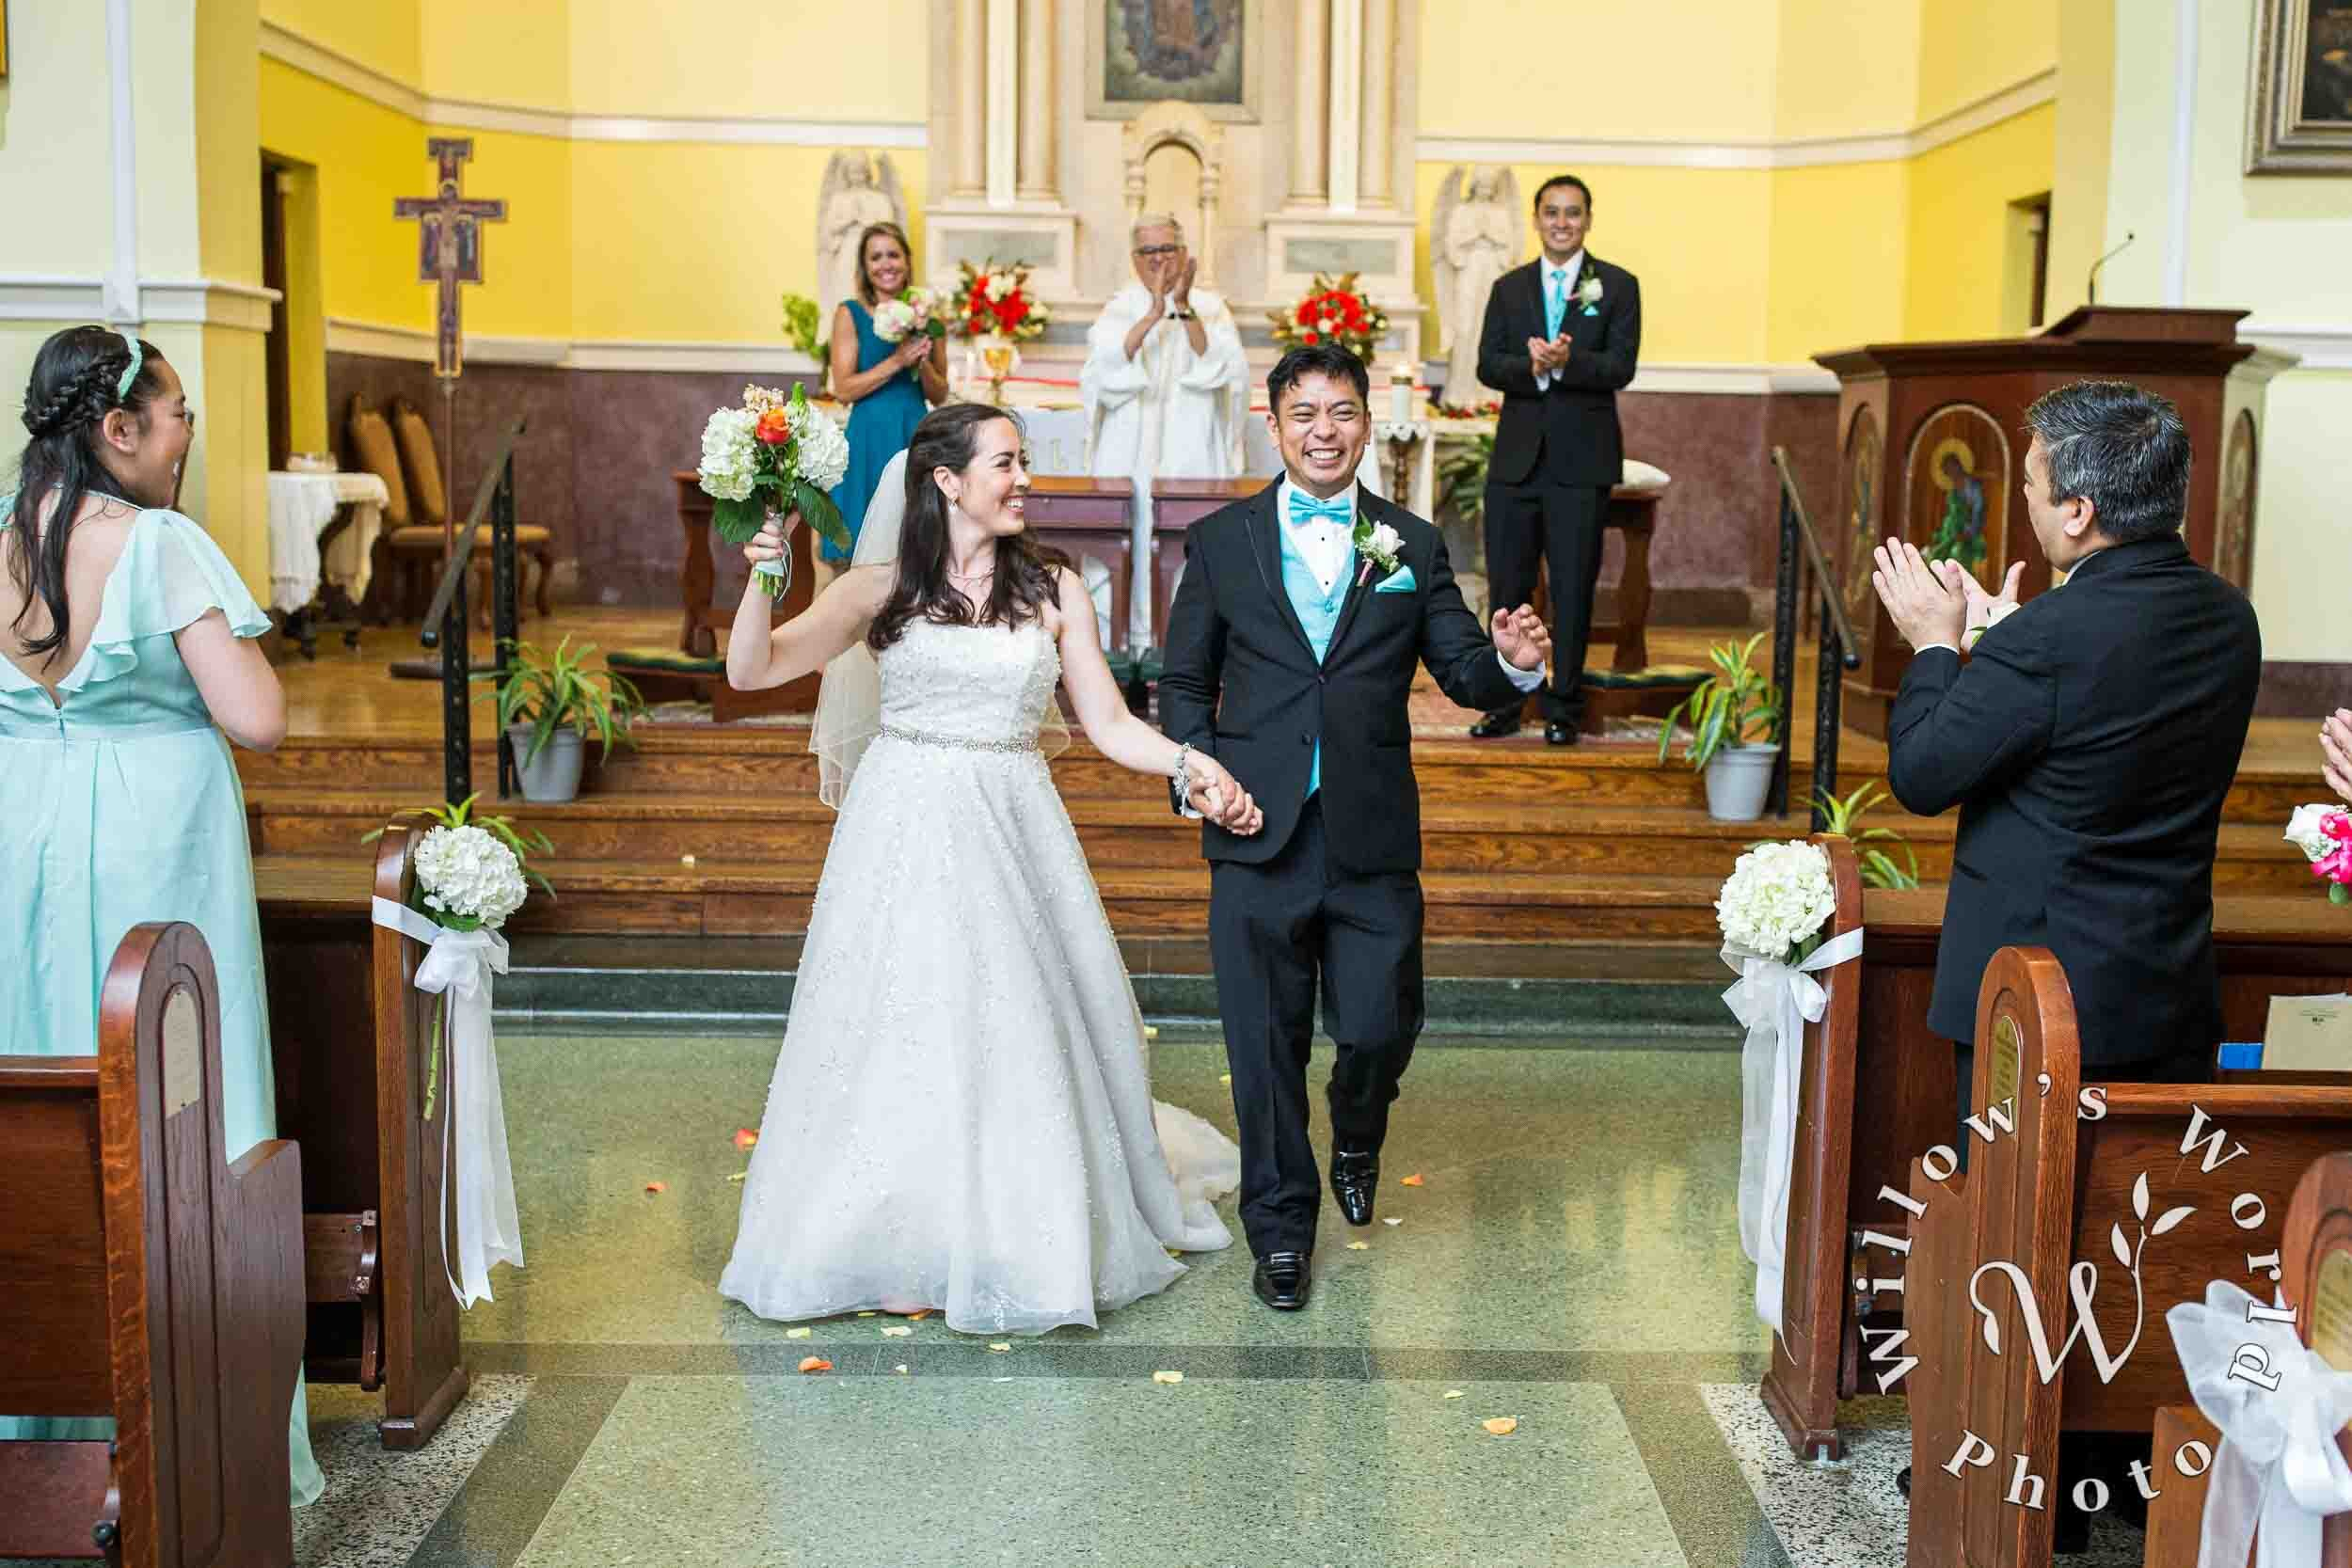 35-Our-Lady-of-Guadalupe-New-Orleans-Catholic-Wedding-Willows-World-Photo.jpg